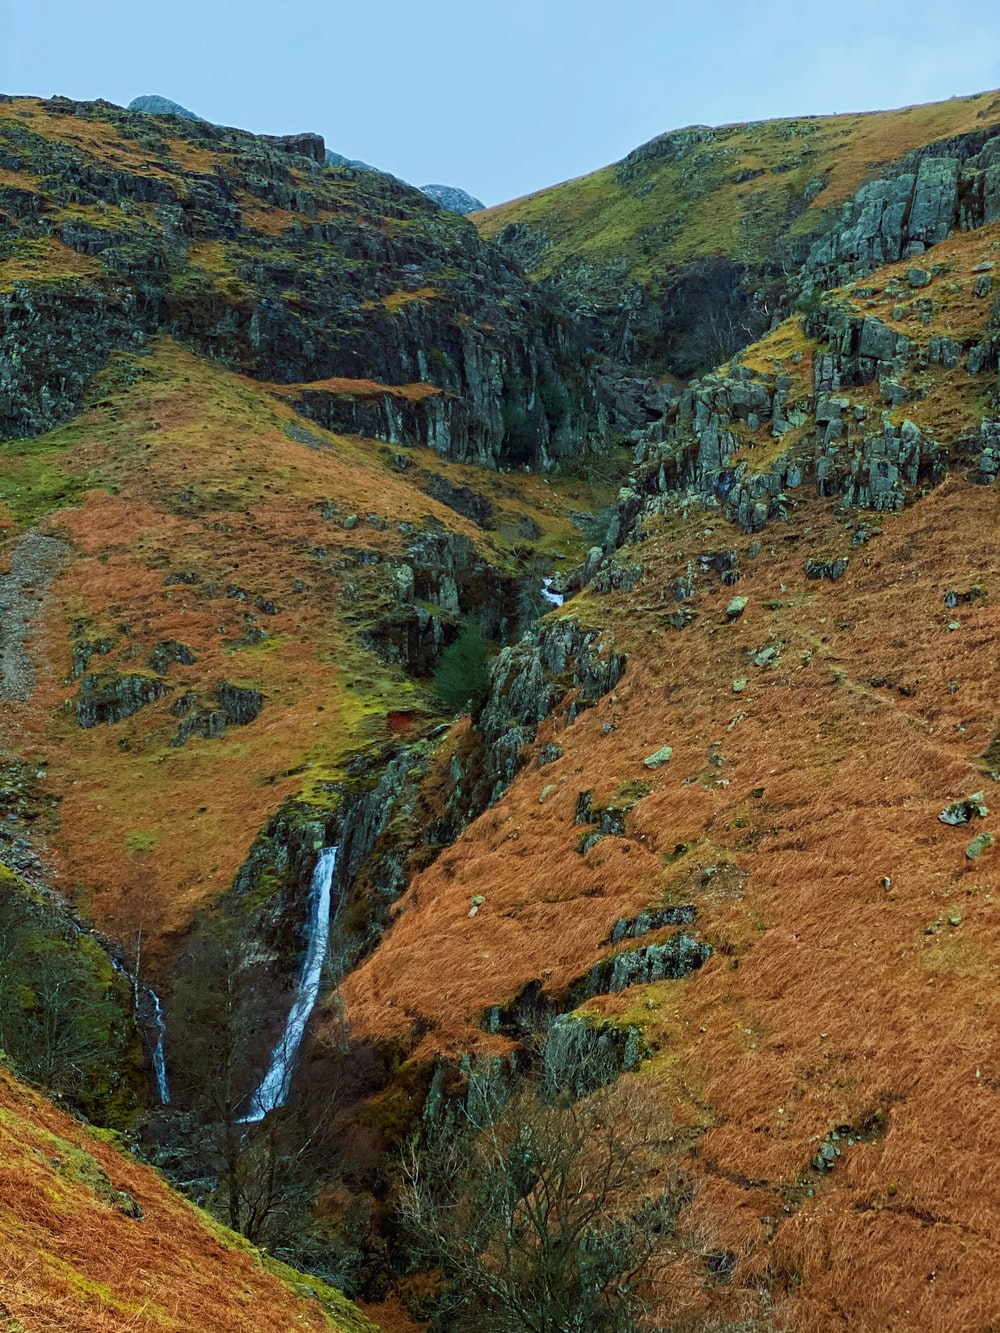 waterfalls in the middle of brown and green mountains